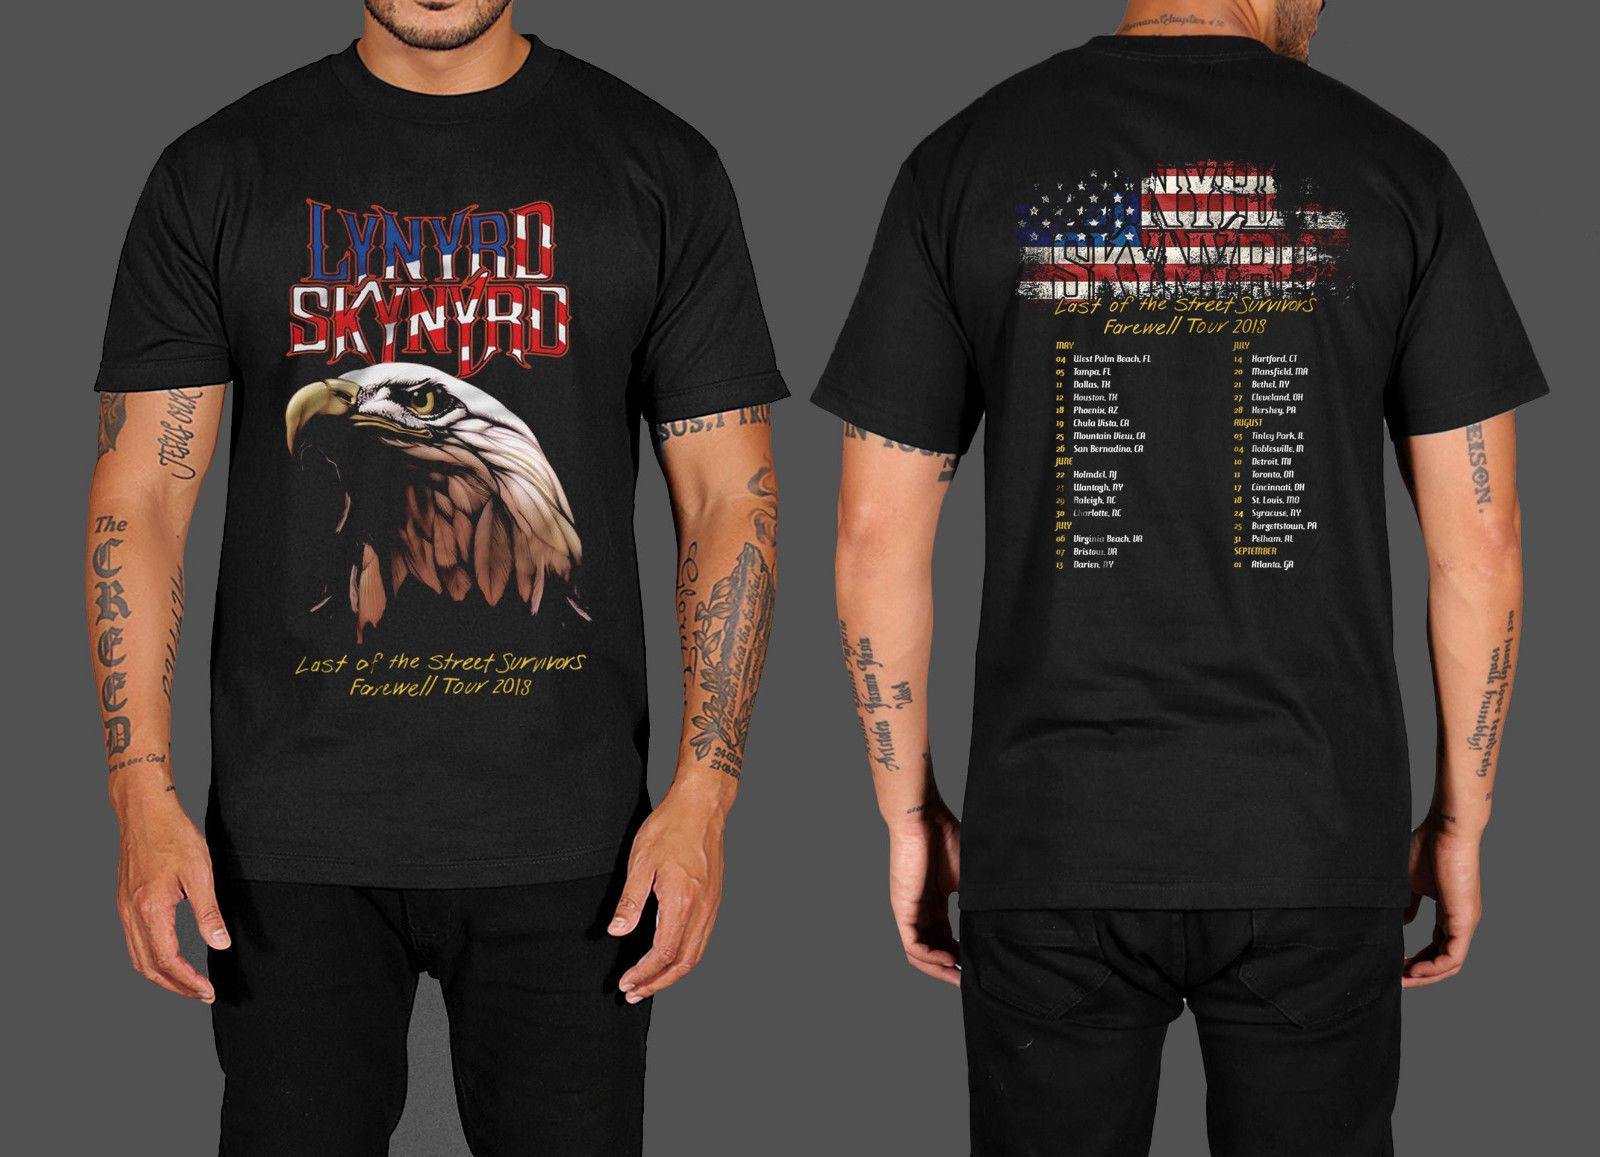 New Popular Lynyrd Skynyrd New Farewell Tour 2018 Black T Shirt